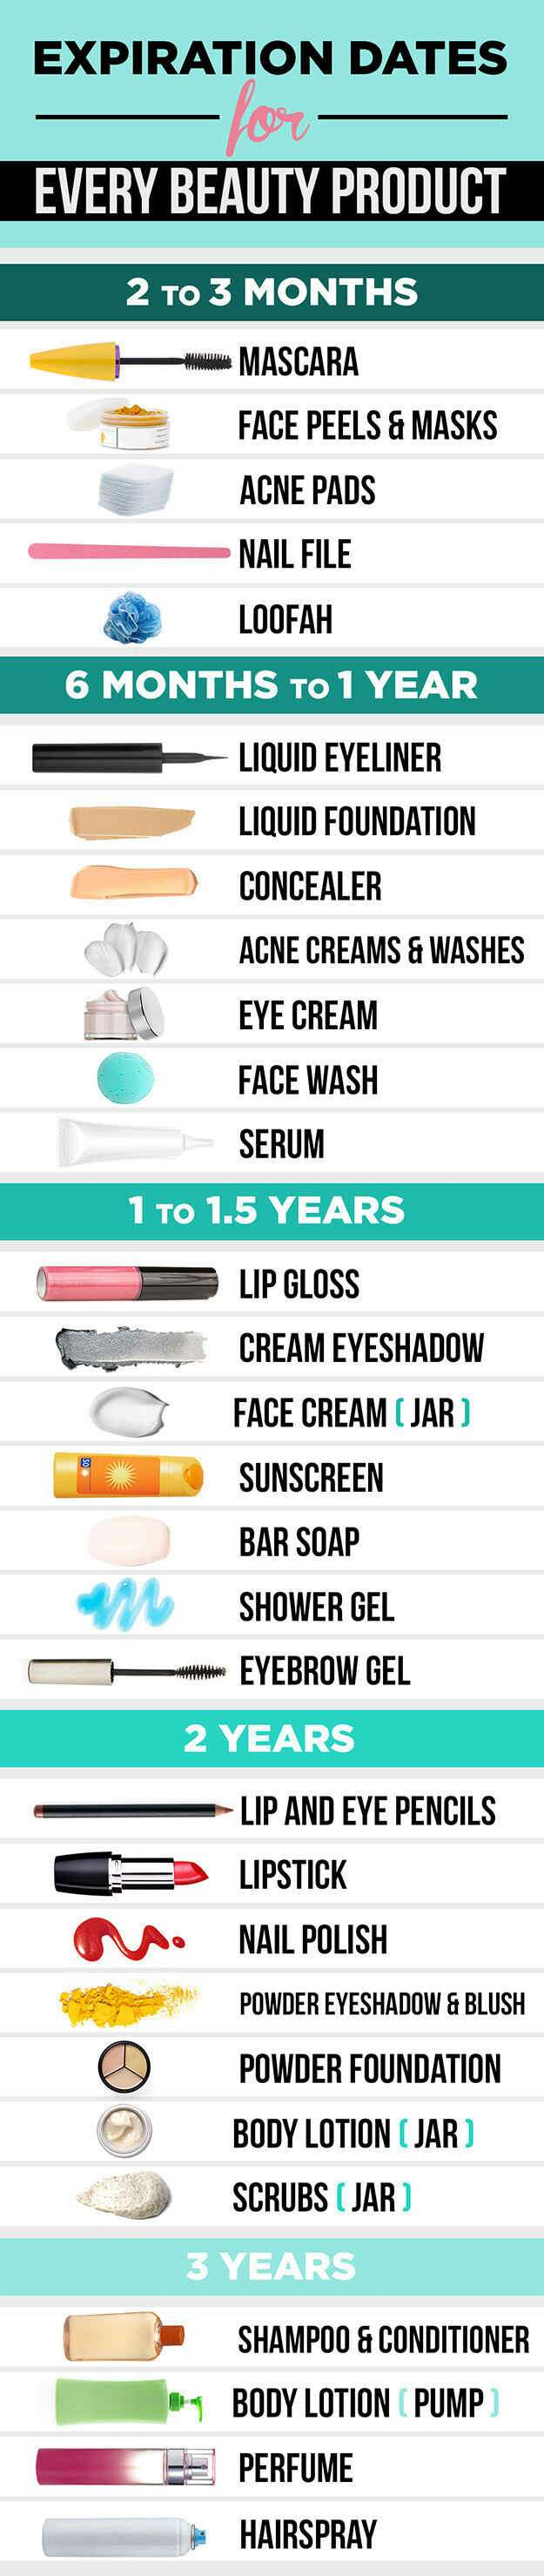 27. Finally, keep in mind it may be time to start tossing some of the products in your makeup bag.